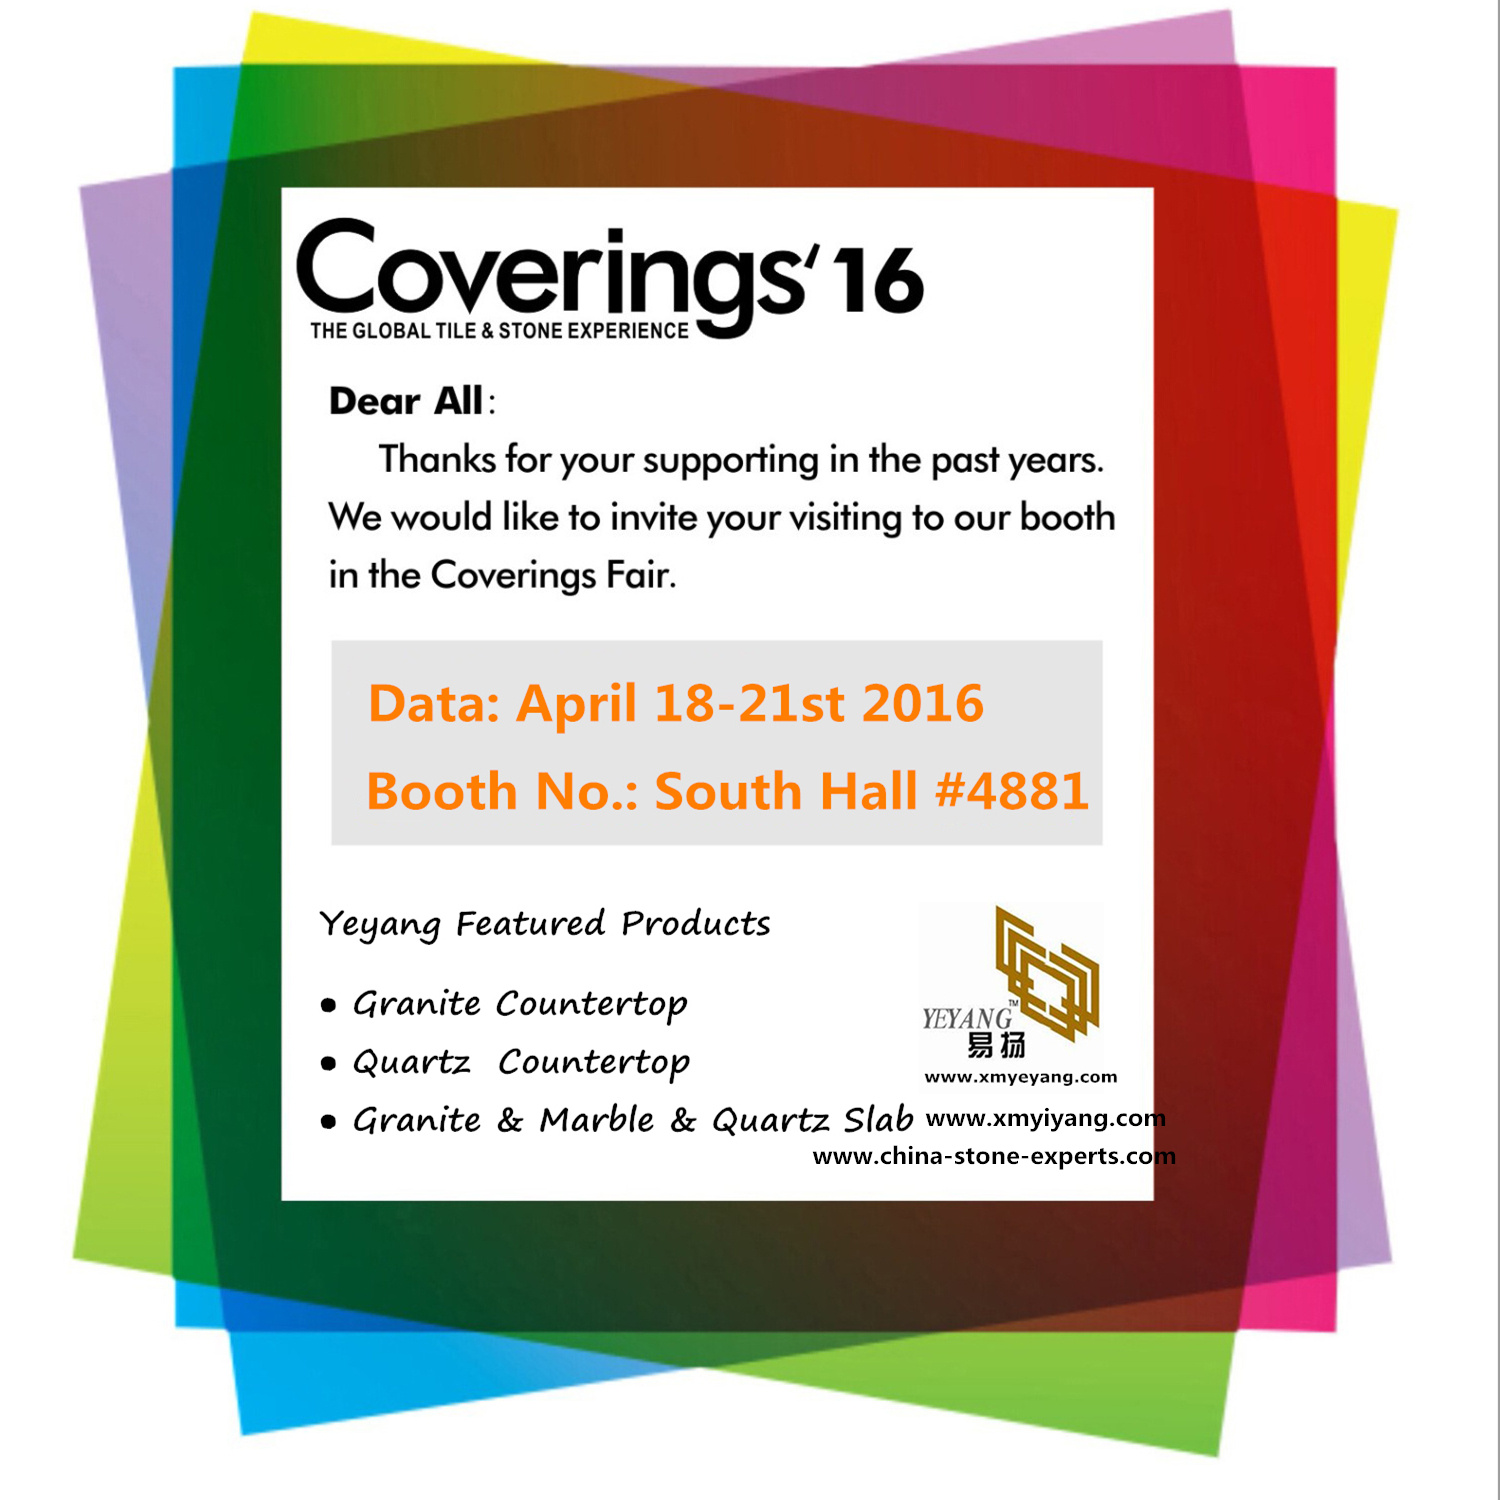 coverings_2016 from yeyang stone